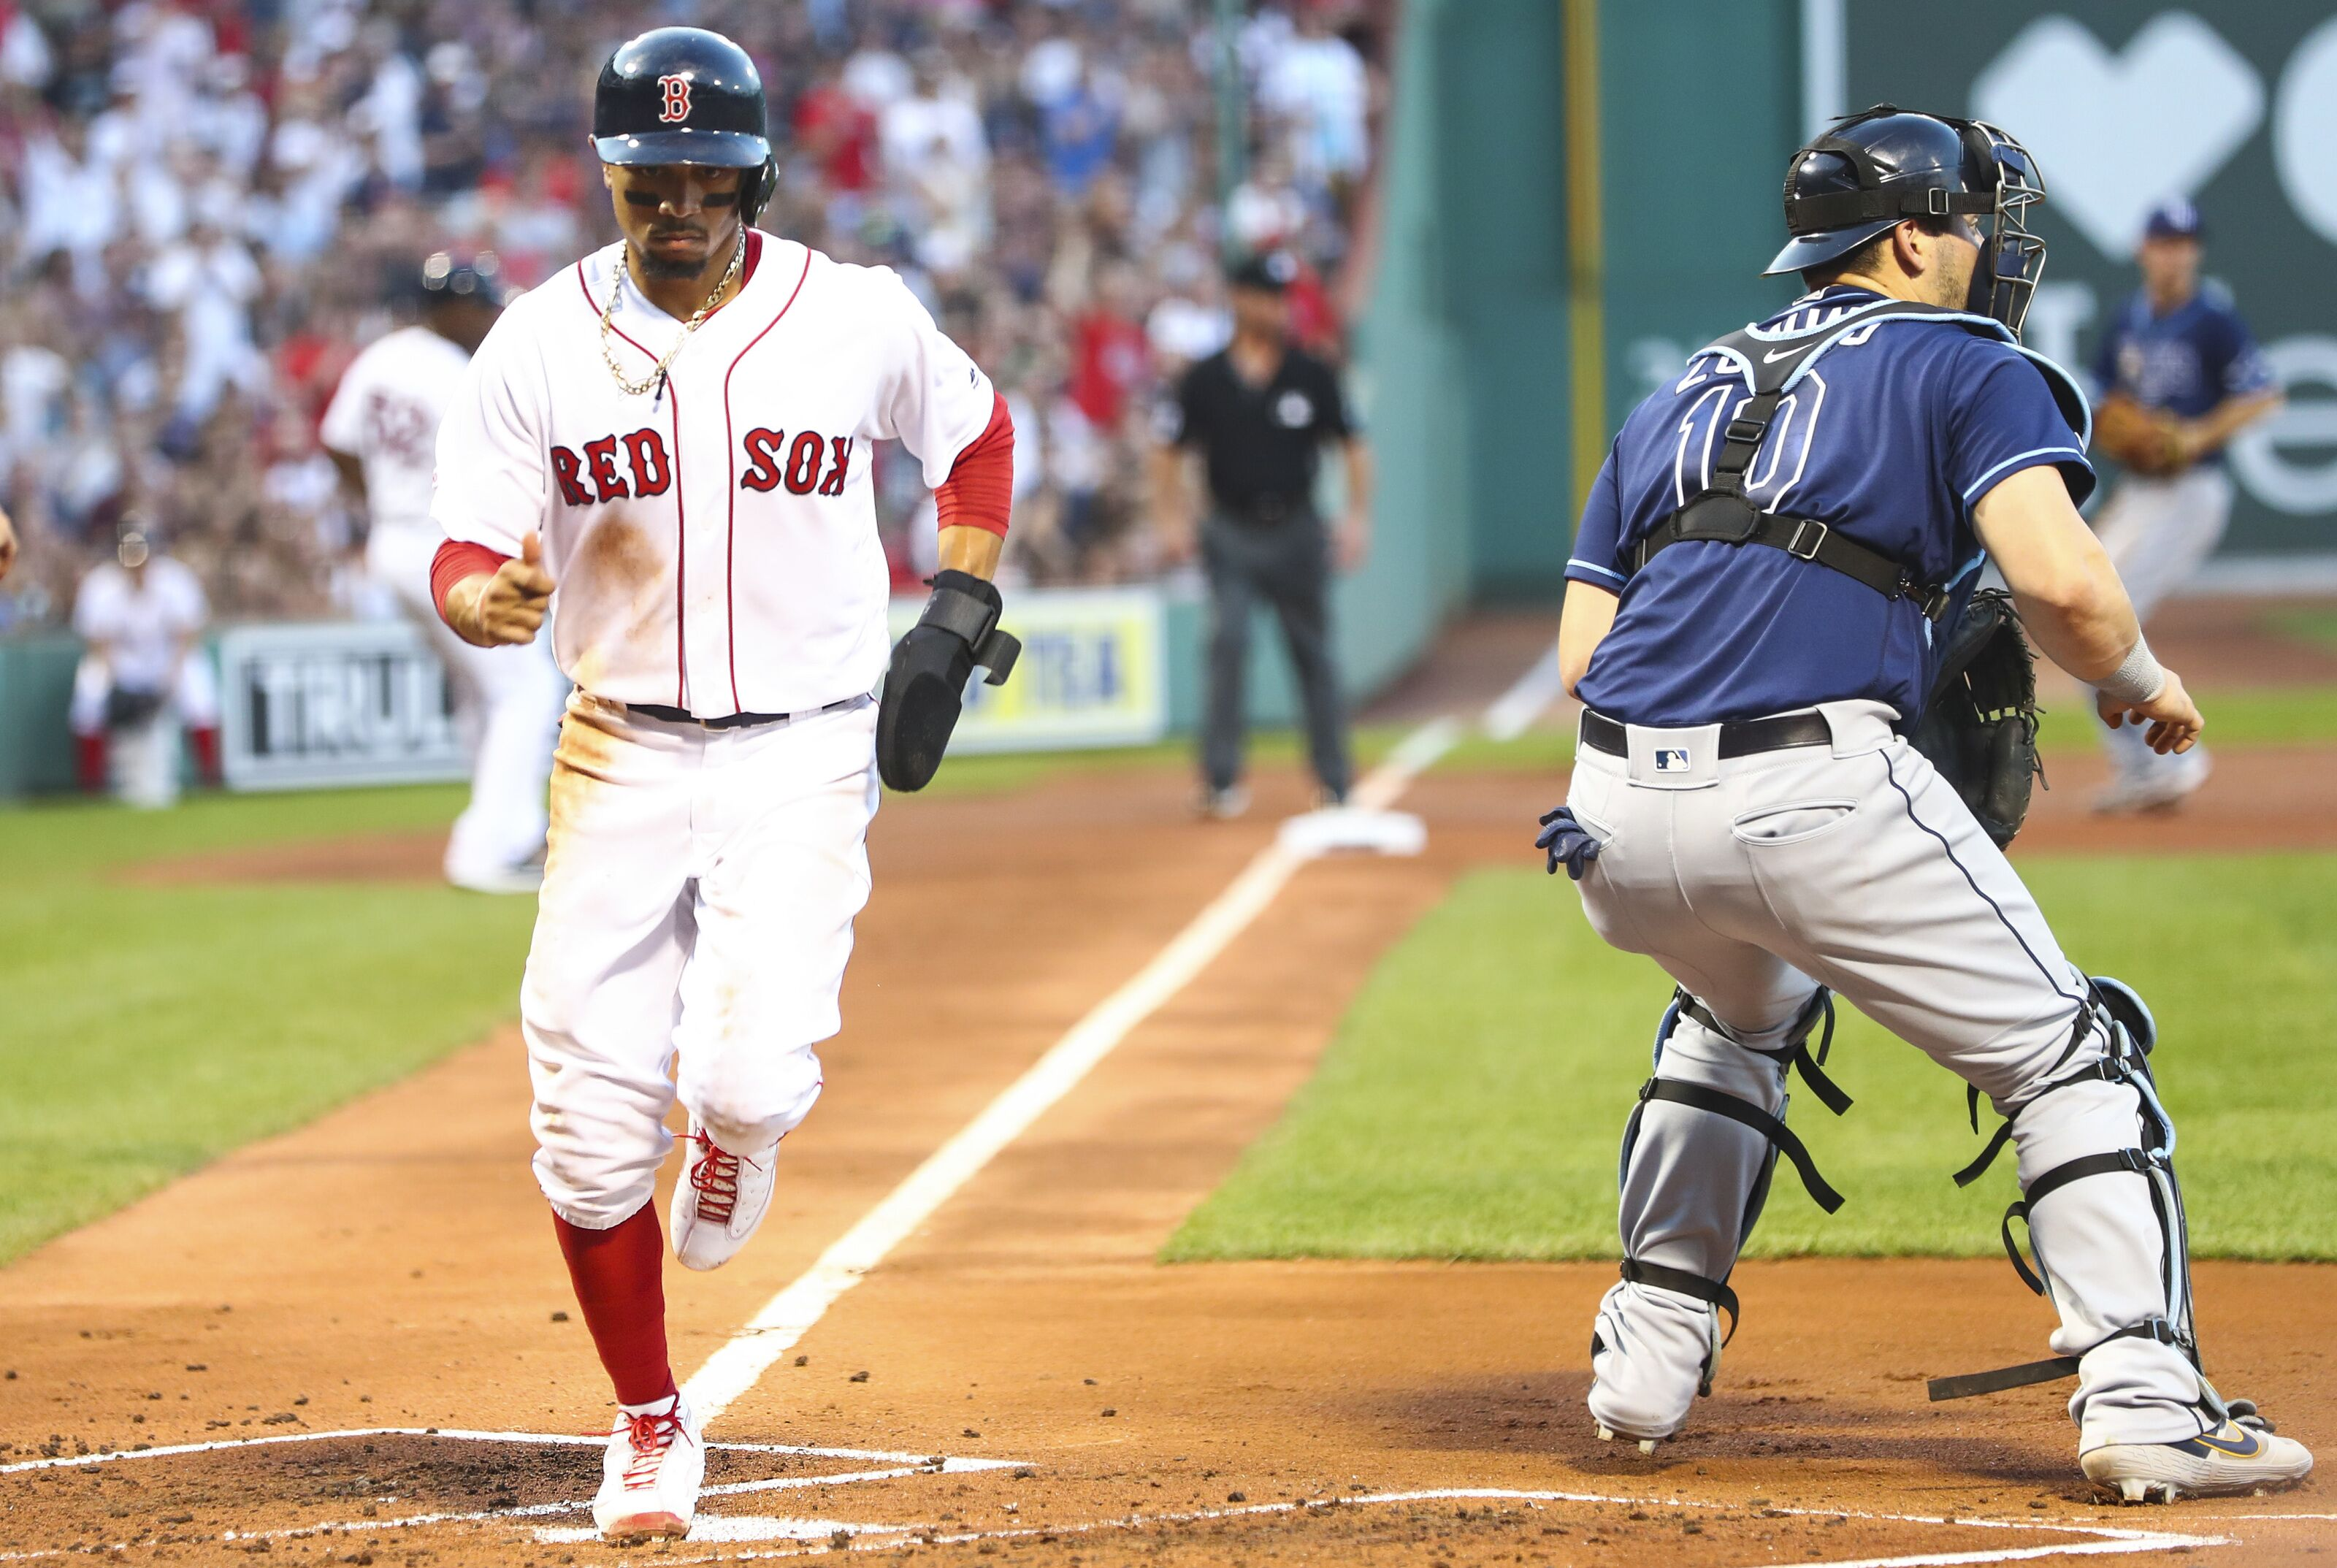 Red Sox outfielder Mookie Betts on historic run scoring pace